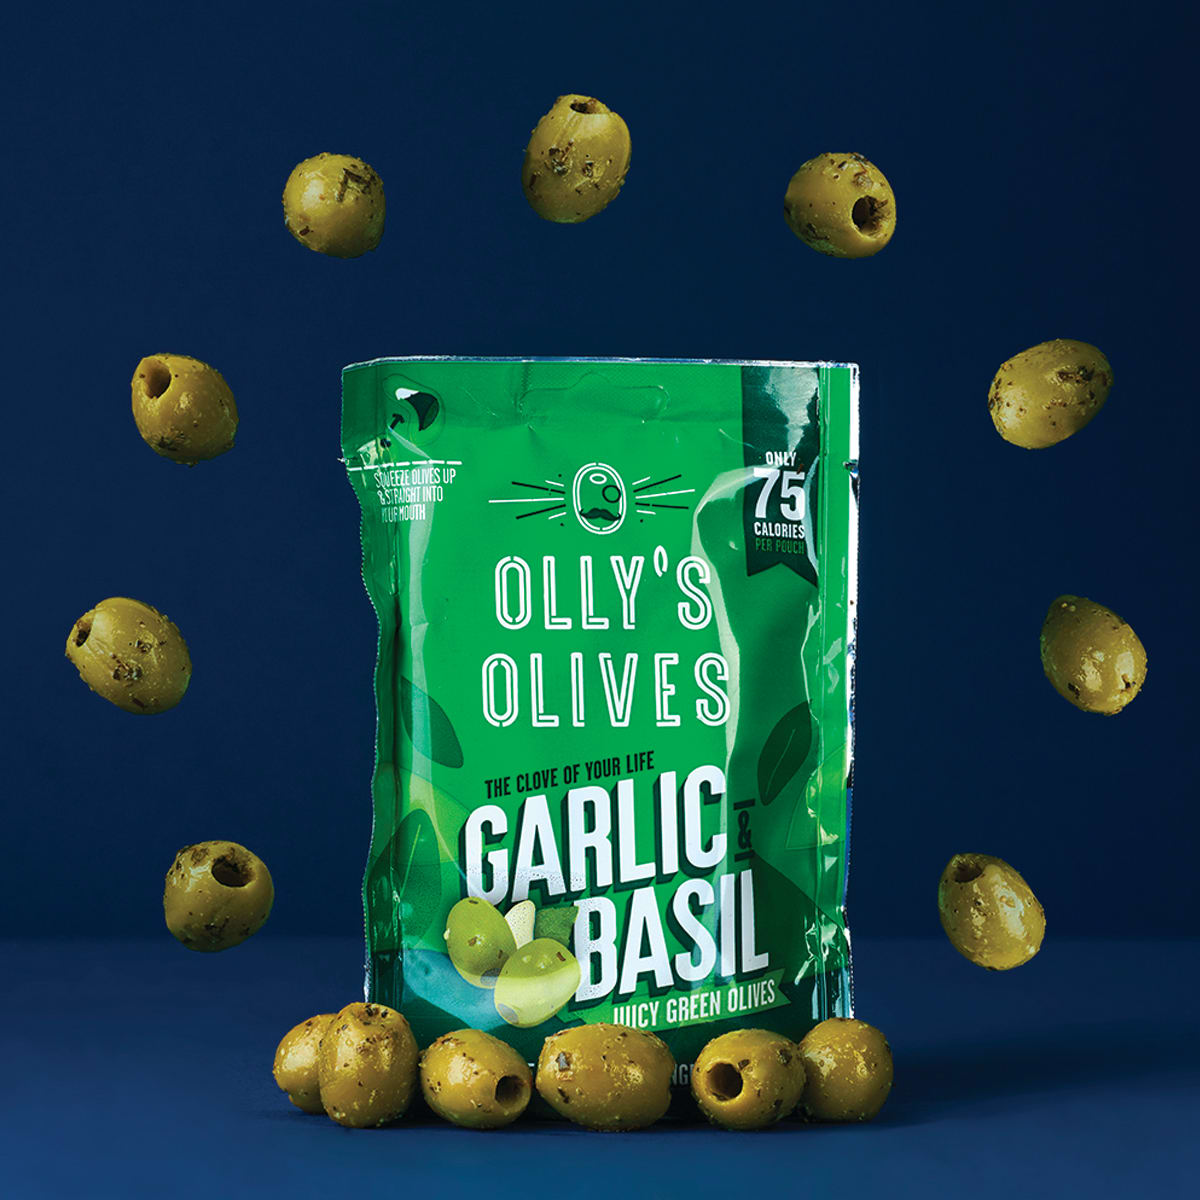 Olly's Garlic & Basil Olives 50g, 75 calories, classic marinade of garlic and basil, no messy oils and no stones, snack pack, gluten free, suitable for vegans